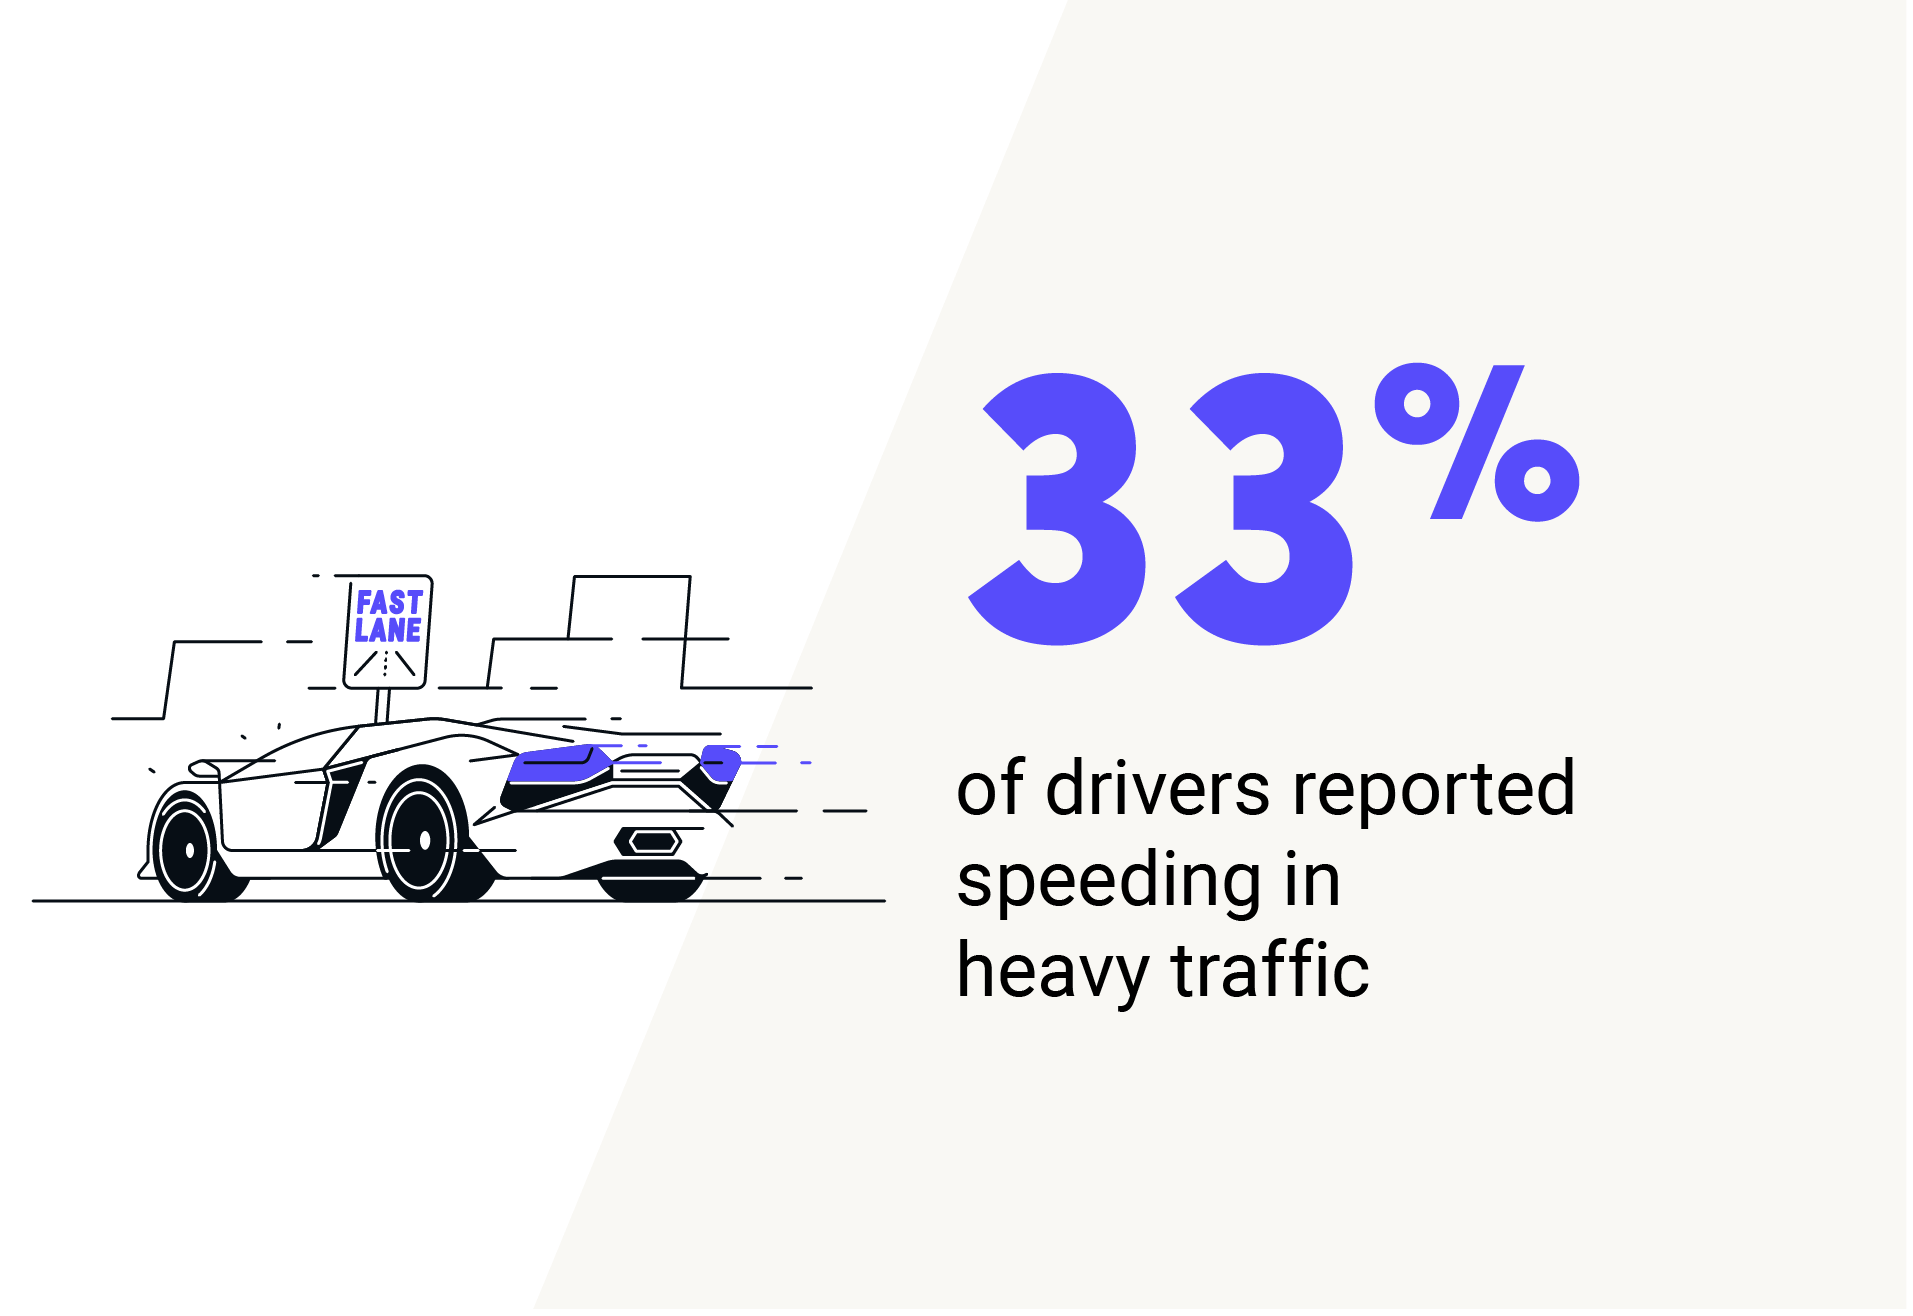 33% of drivers reported speeding in heavy traffic